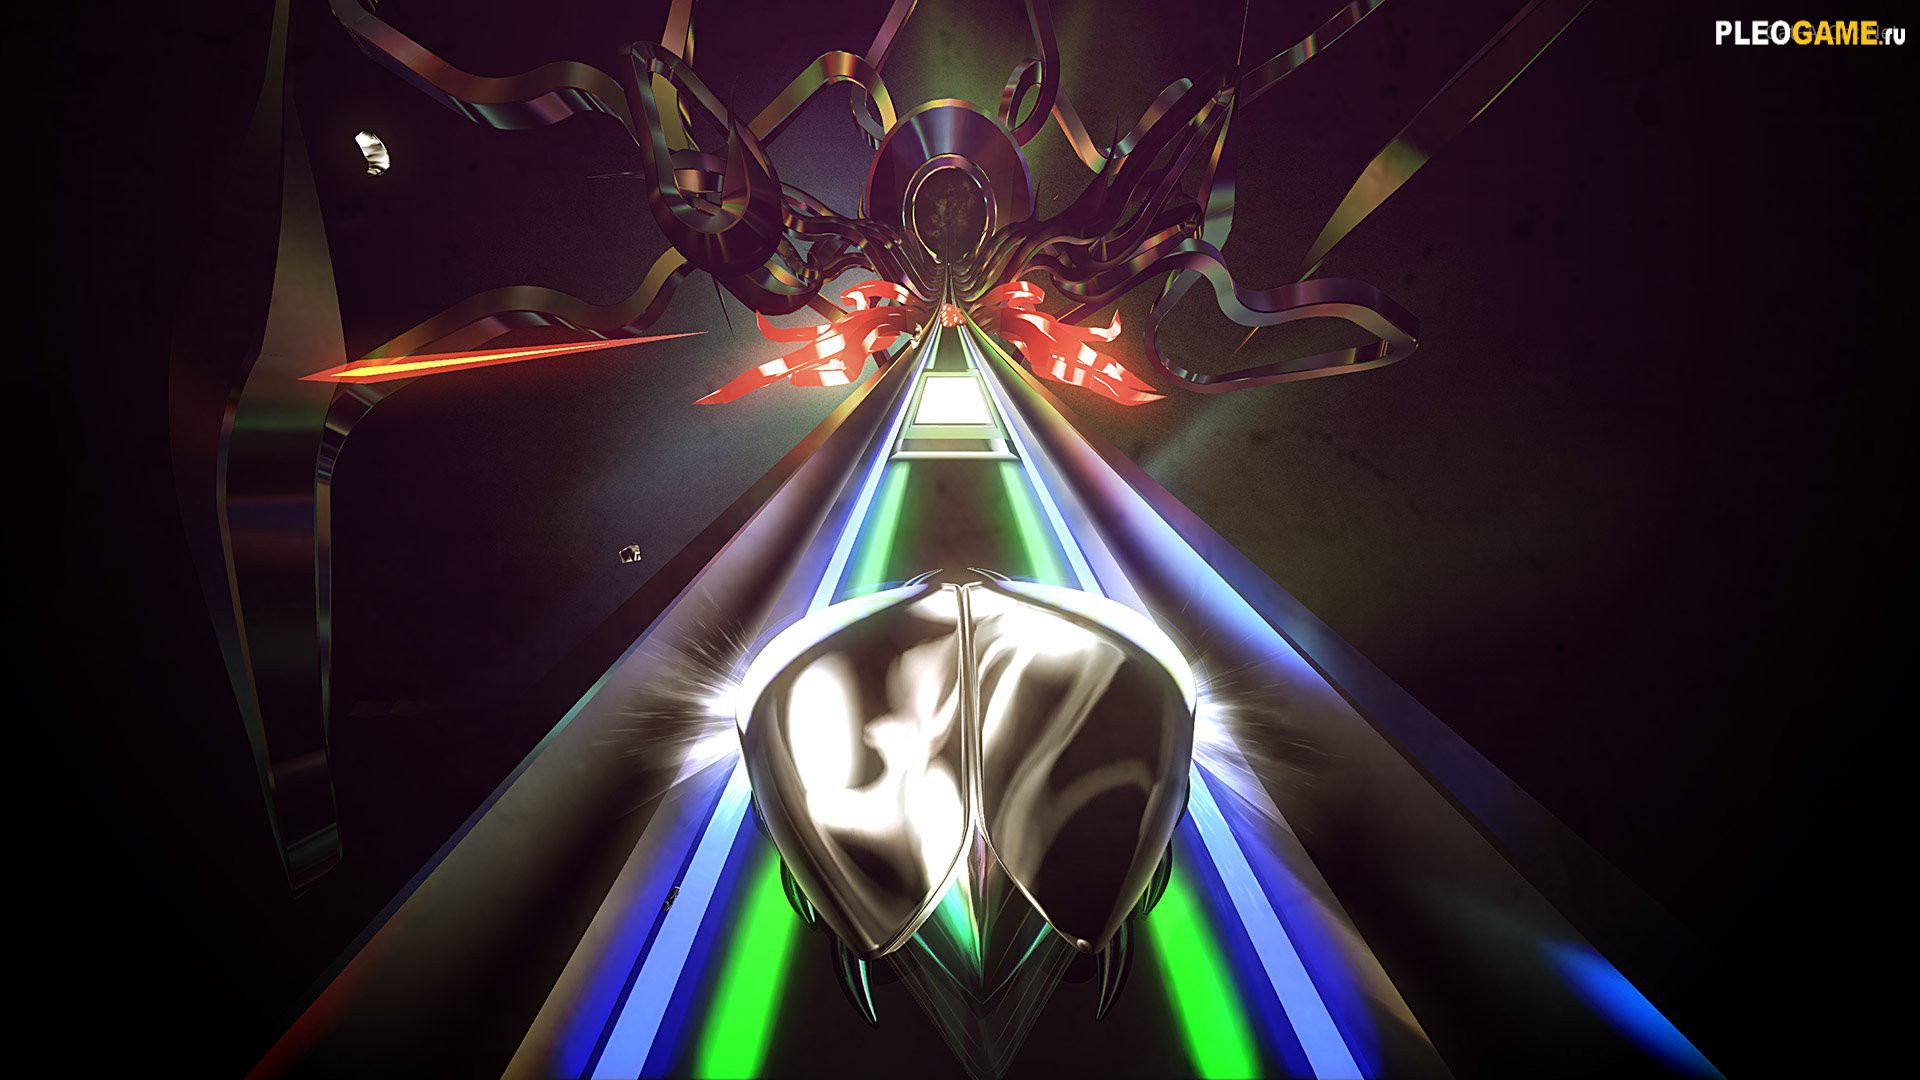 Игра Thumper v10.11.2016  (2016) PC